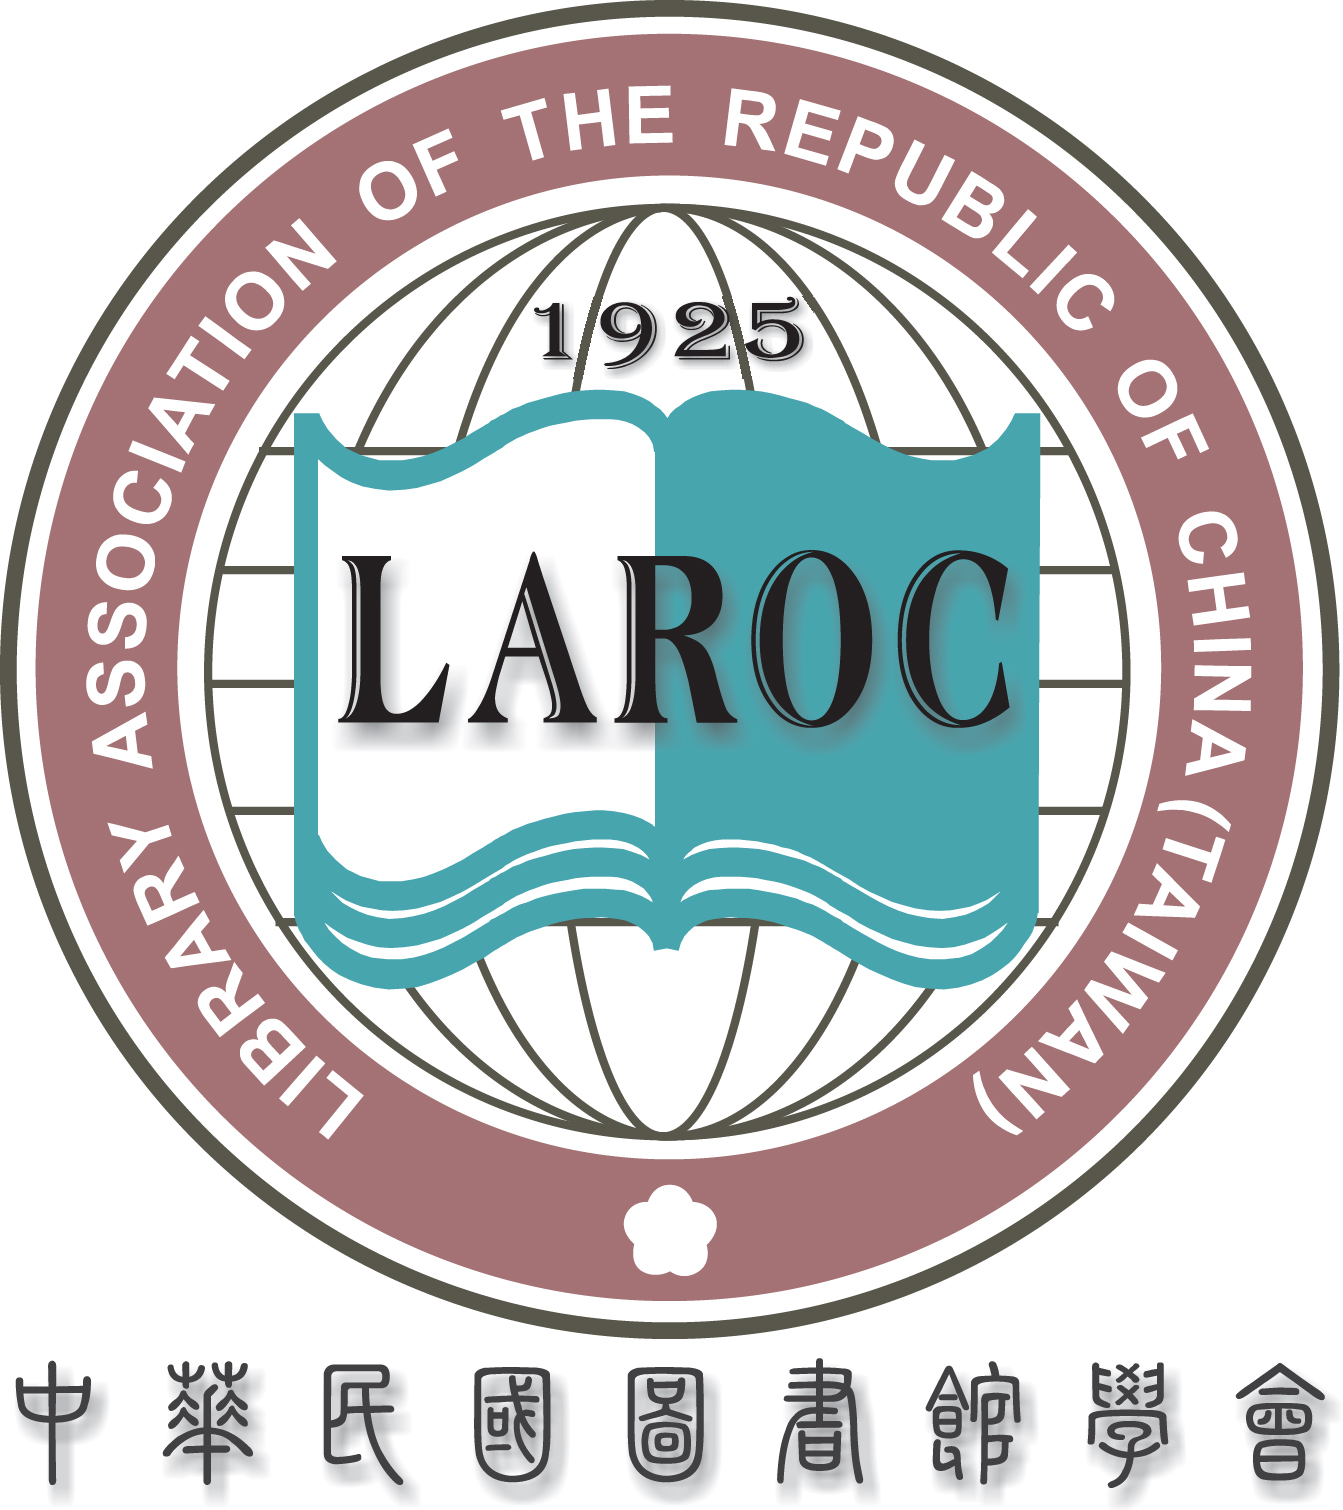 https://www.elsevier.com/__data/assets/image/0017/850013/logo-LAROC.jpg